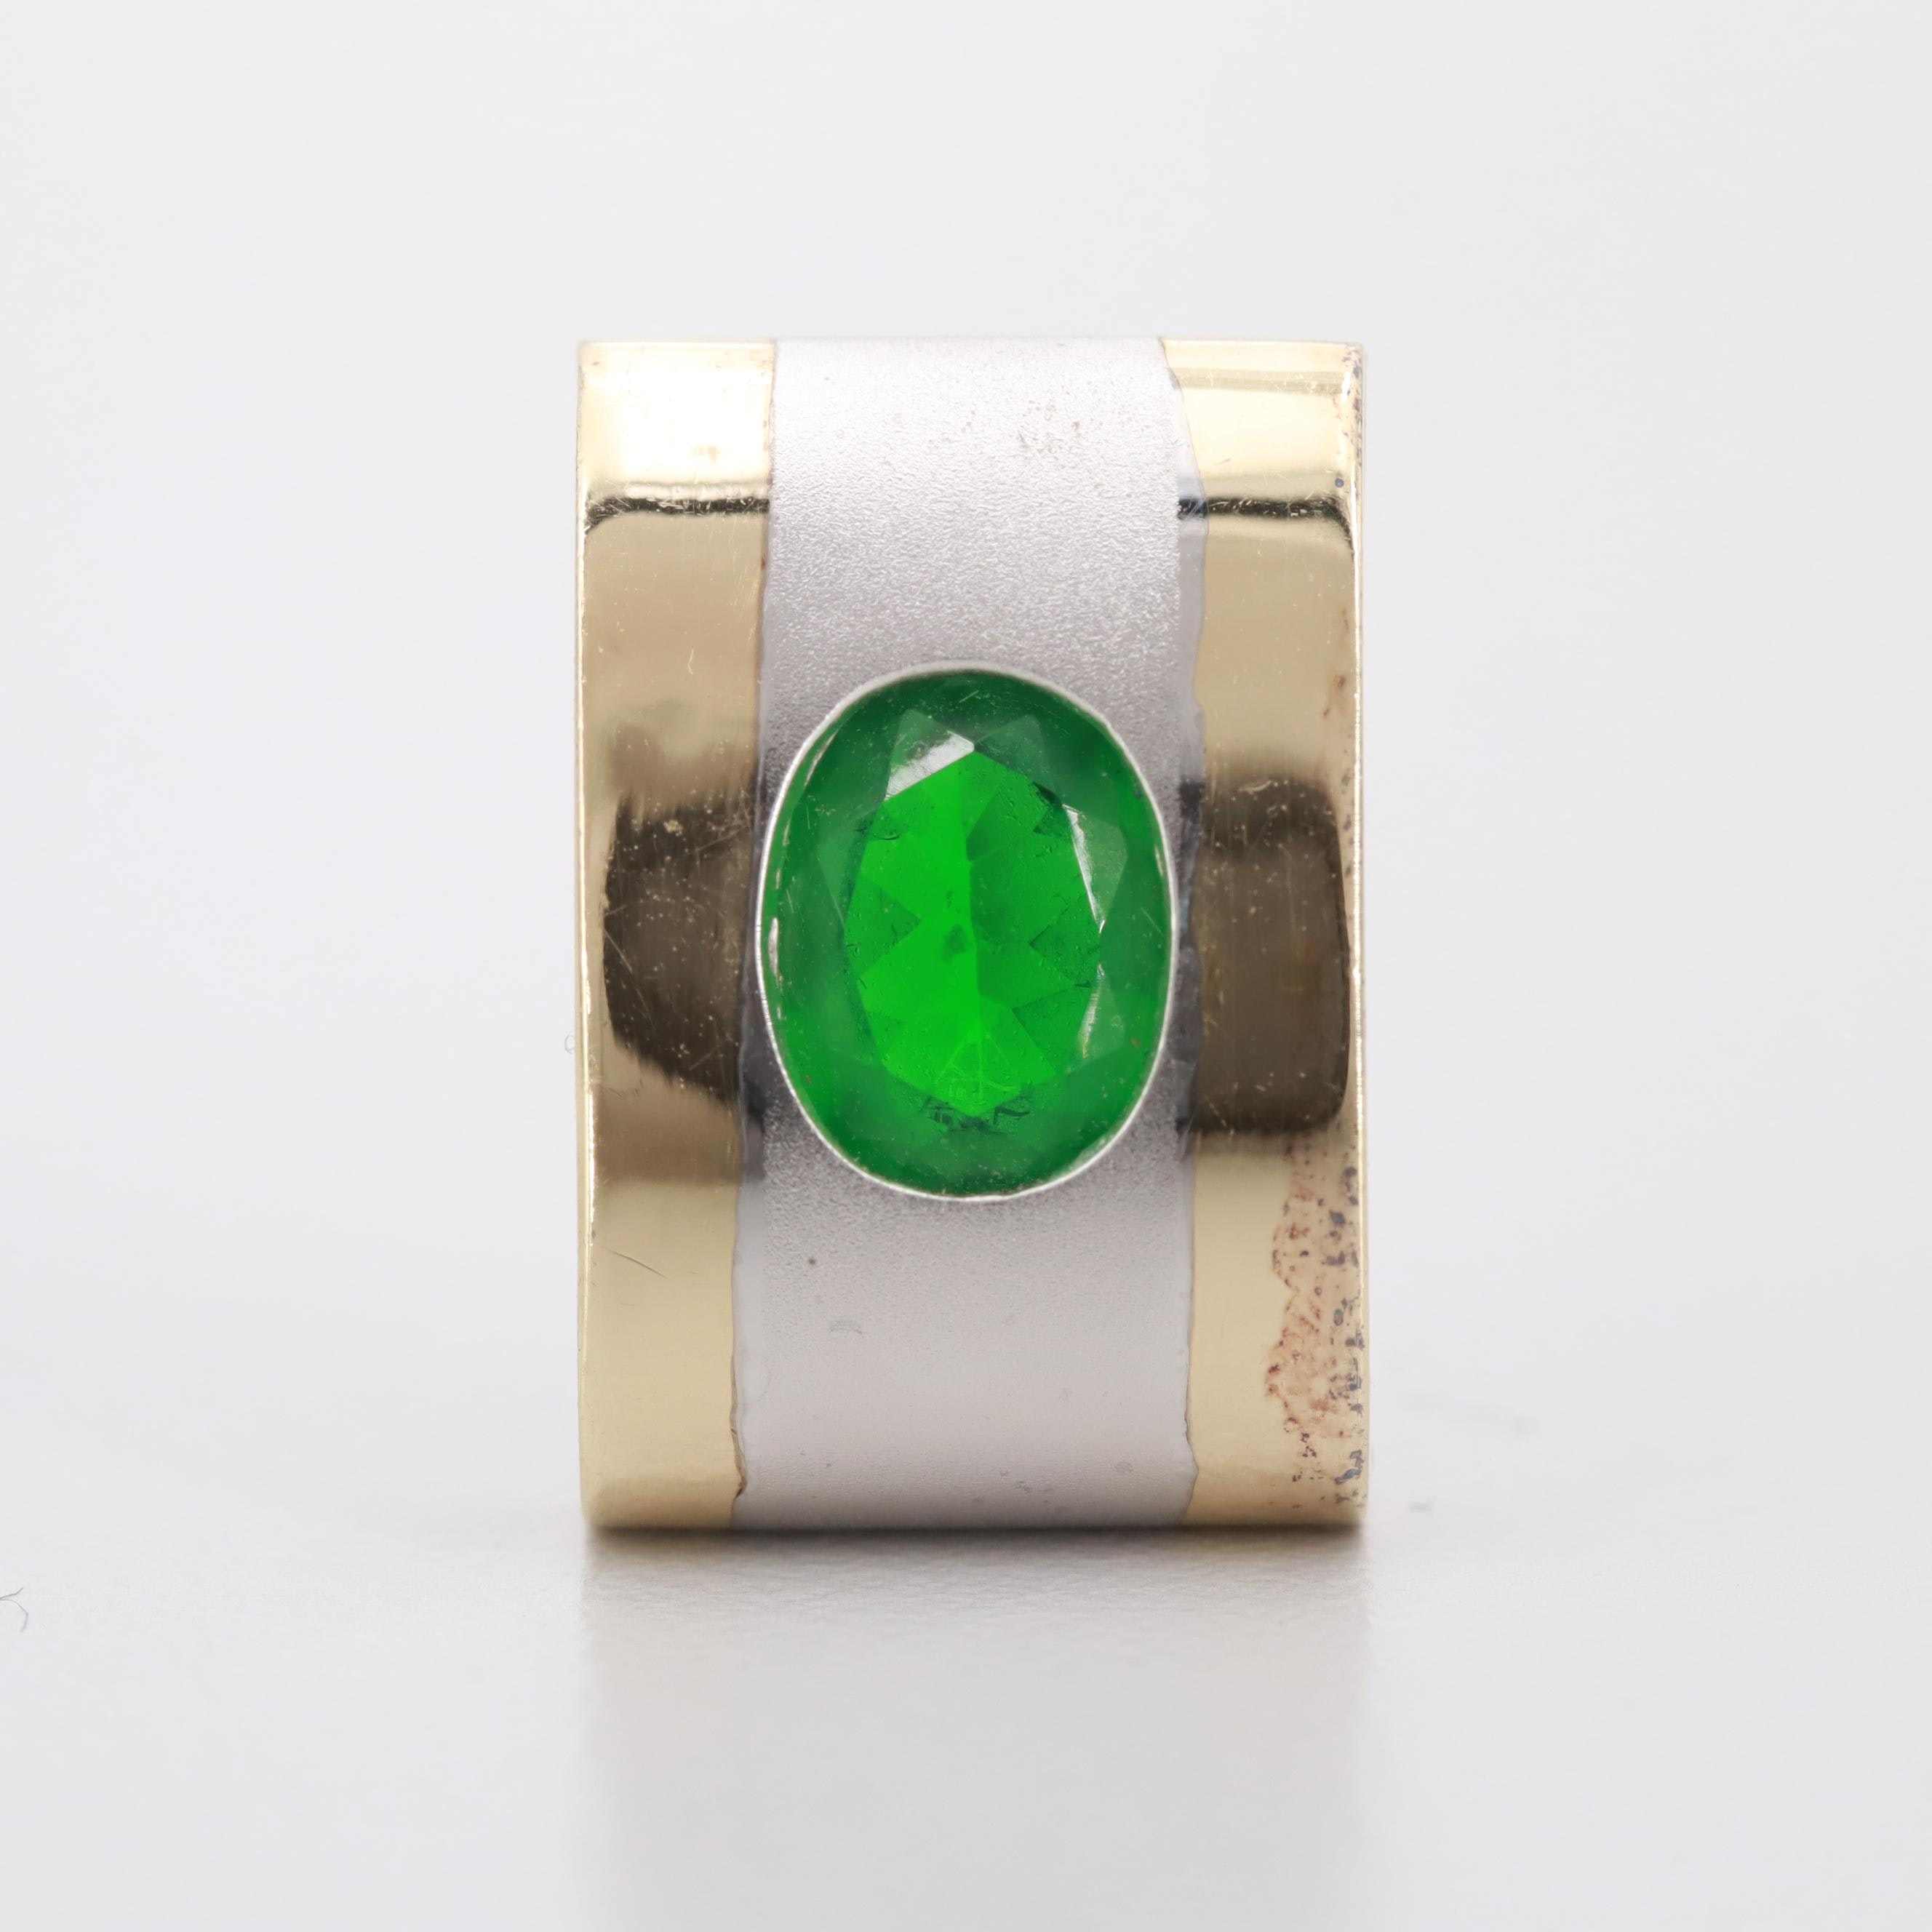 14K Yellow and White Gold Green Glass Pendant